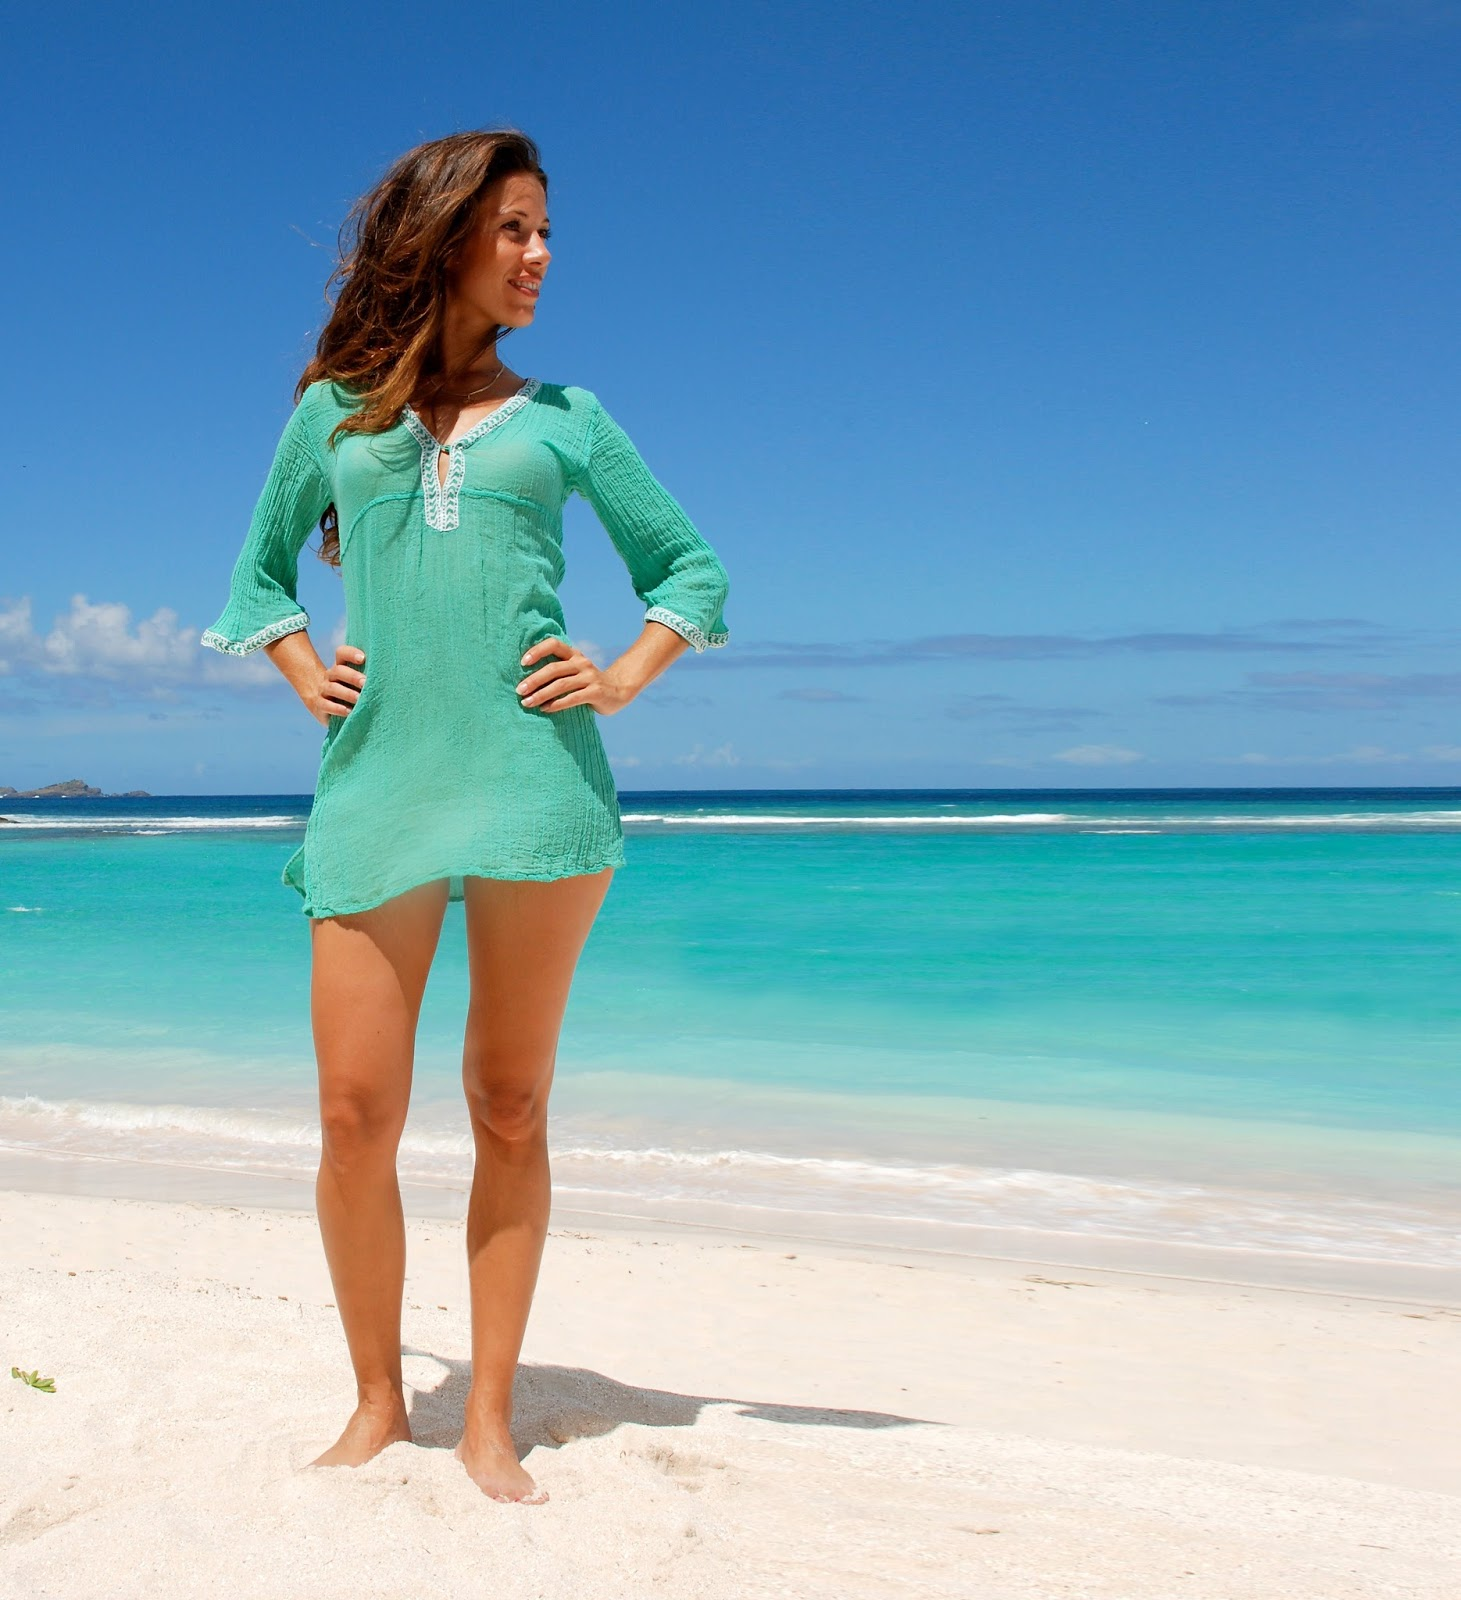 How to Select Best Beachwear and Matching Pareo